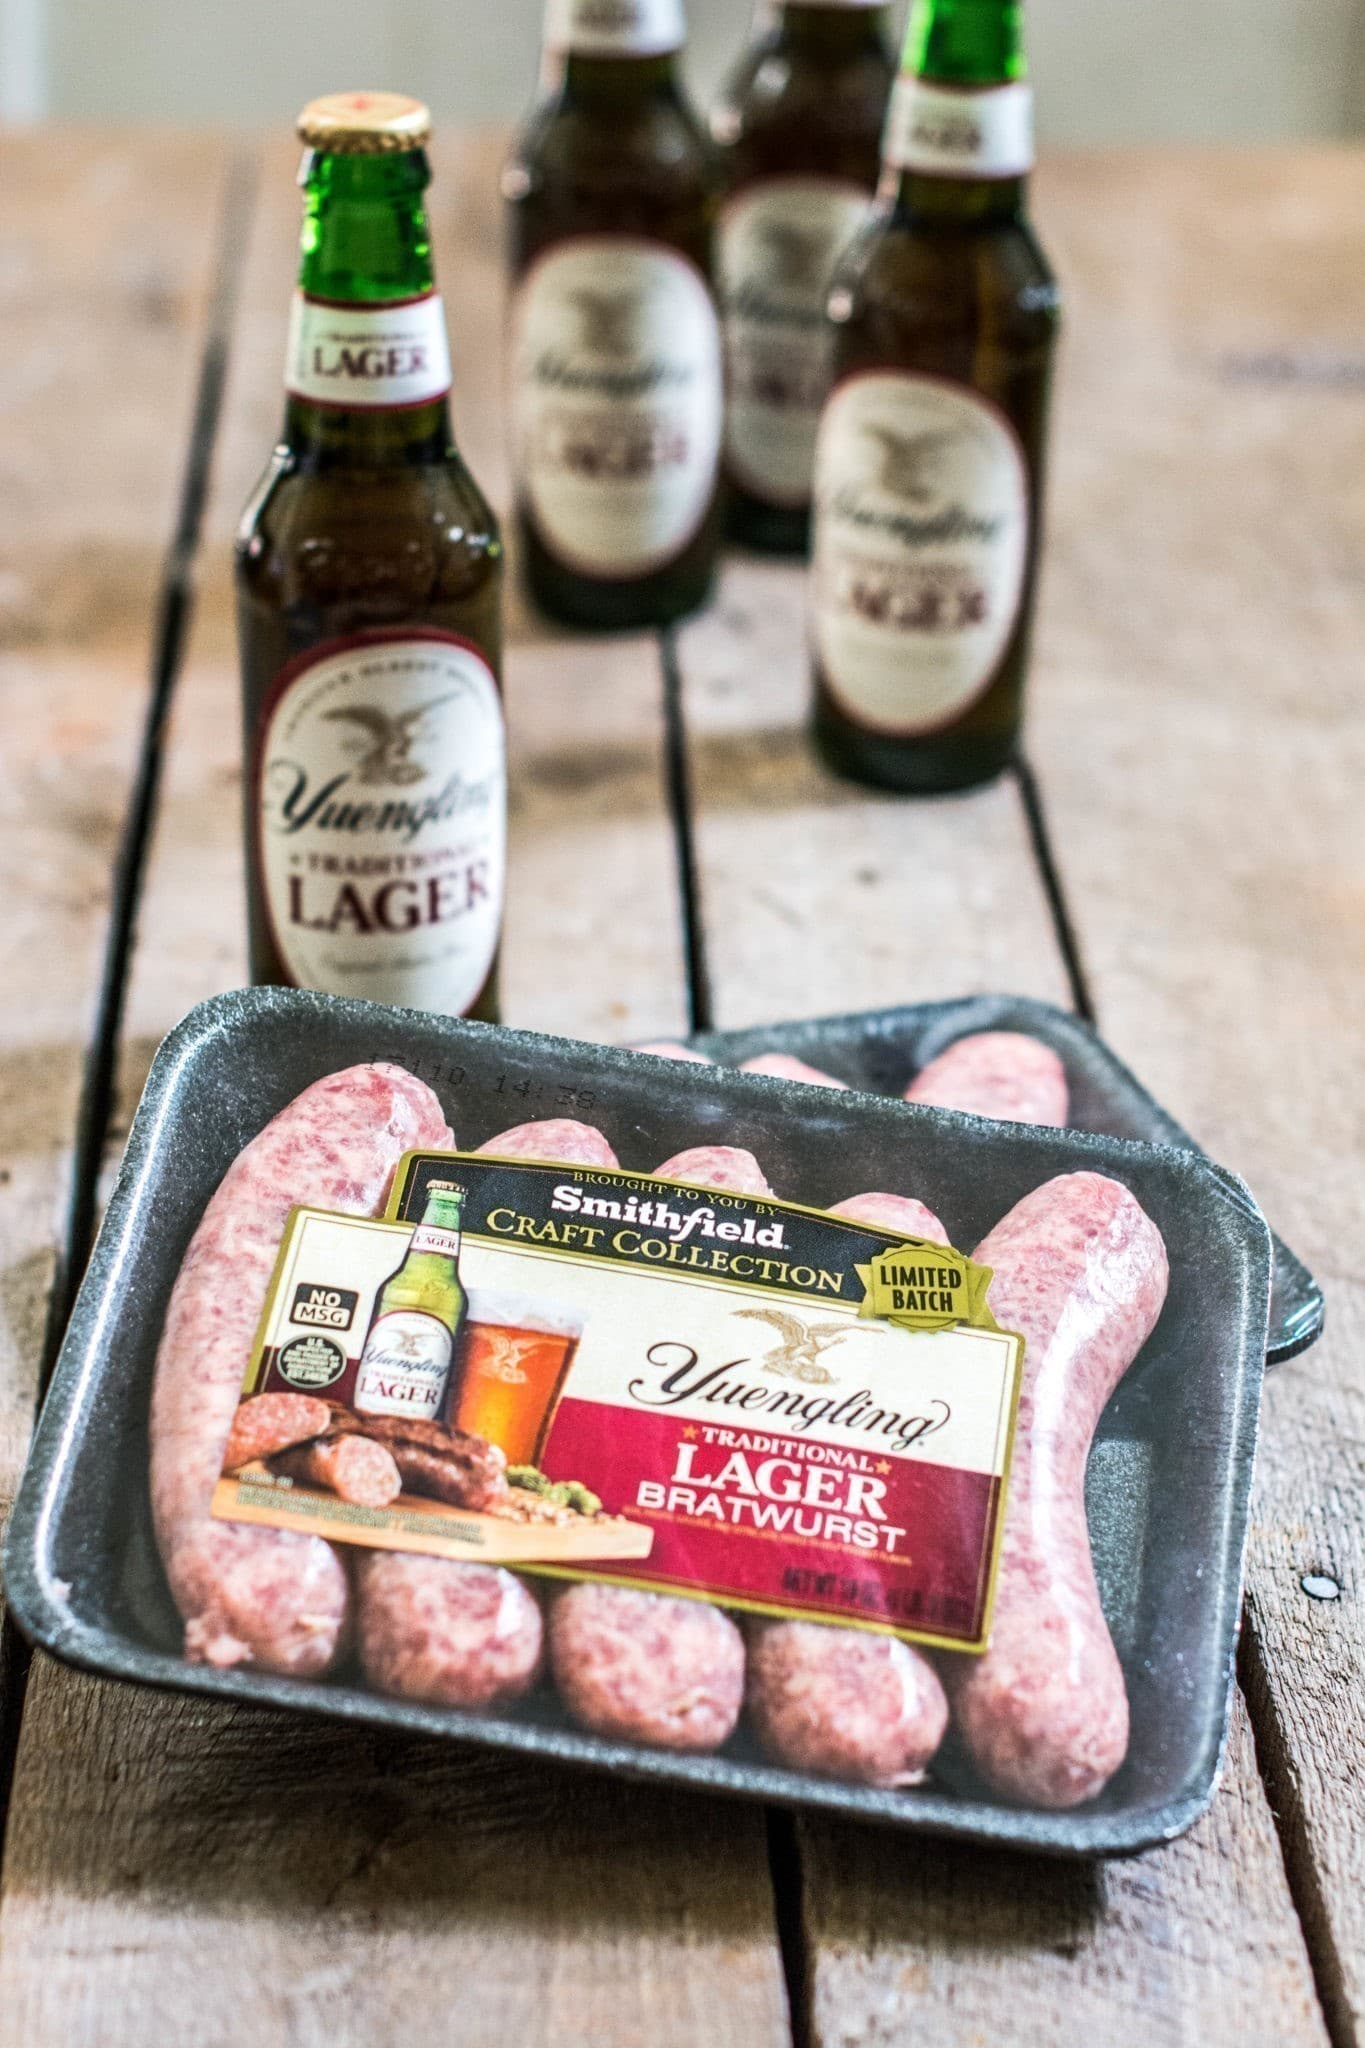 Smithfield® Yuengling® Bratwurst are perfect for your summertime fun! Read more at Little Figgy Food about #BeerBrats with @SmithfieldBrand and @Yuengling_Beer. #ad